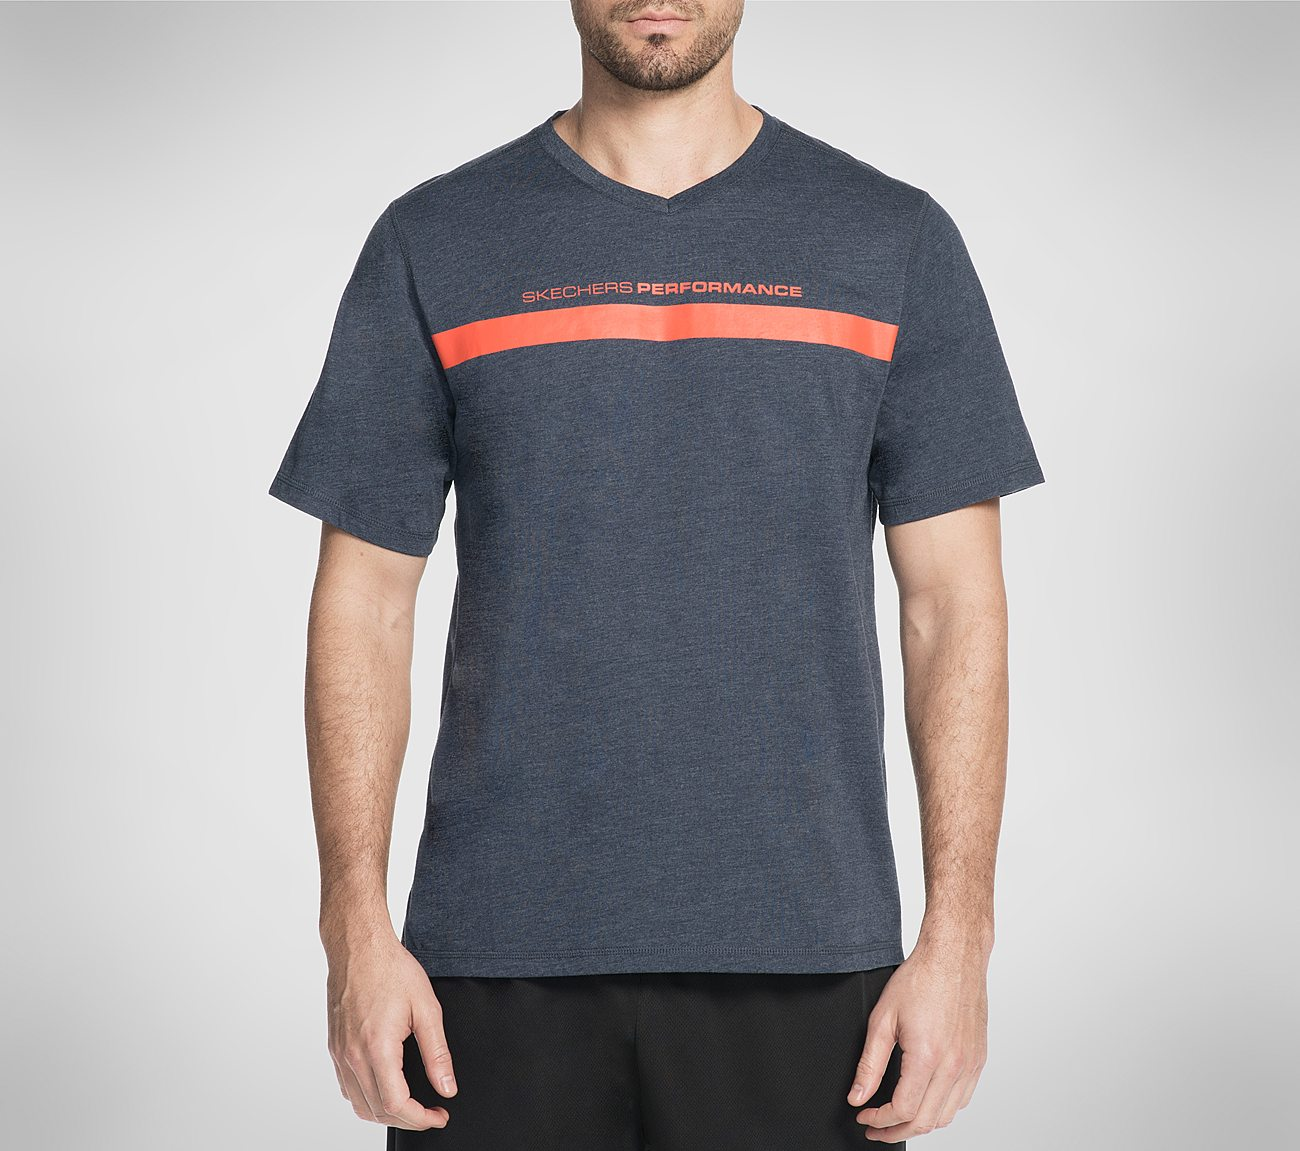 GOwalk Pastime V Neck Tee Shirt